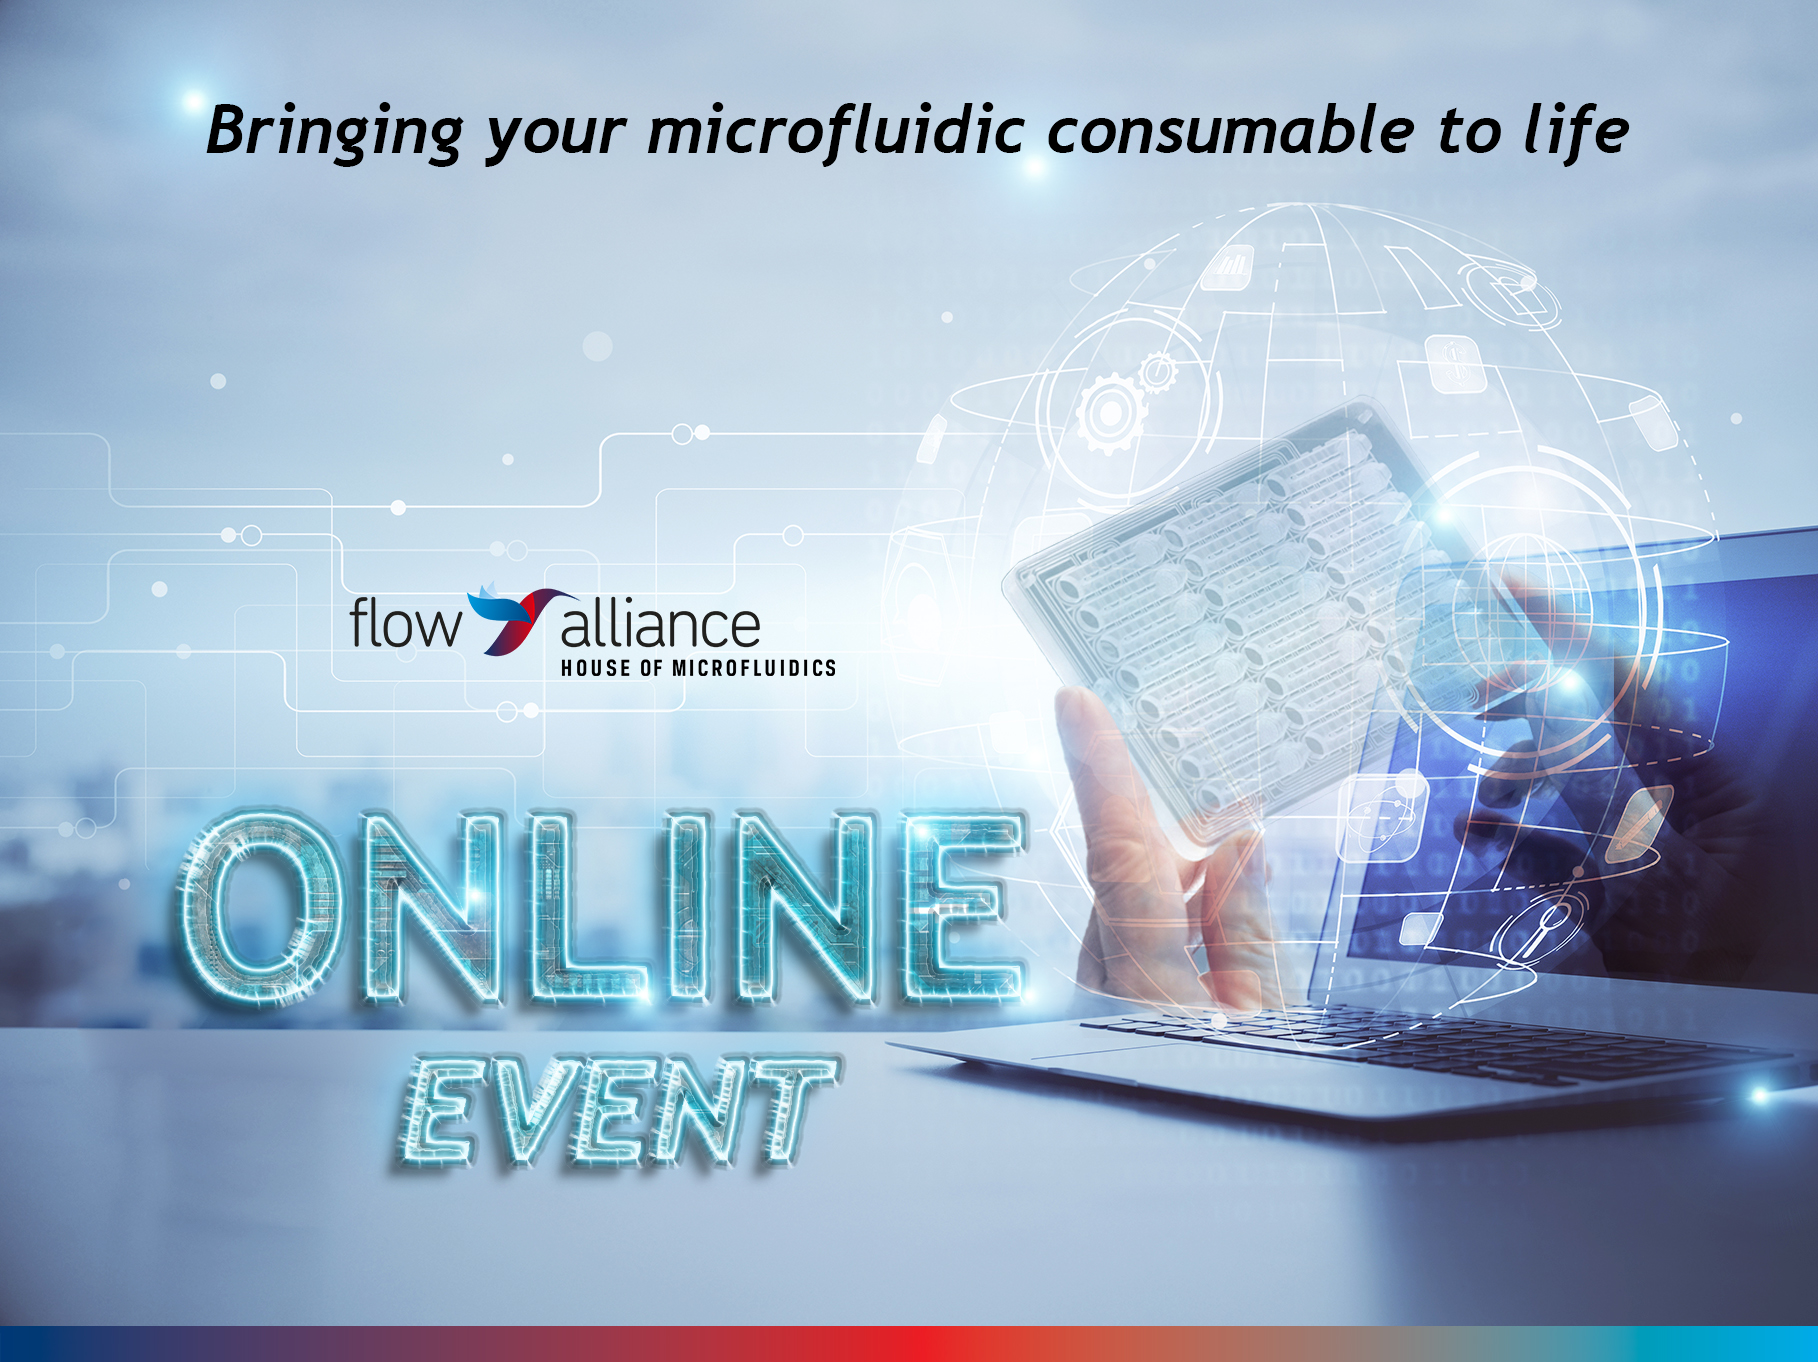 Event: Bringing your microfluidic consumable to life